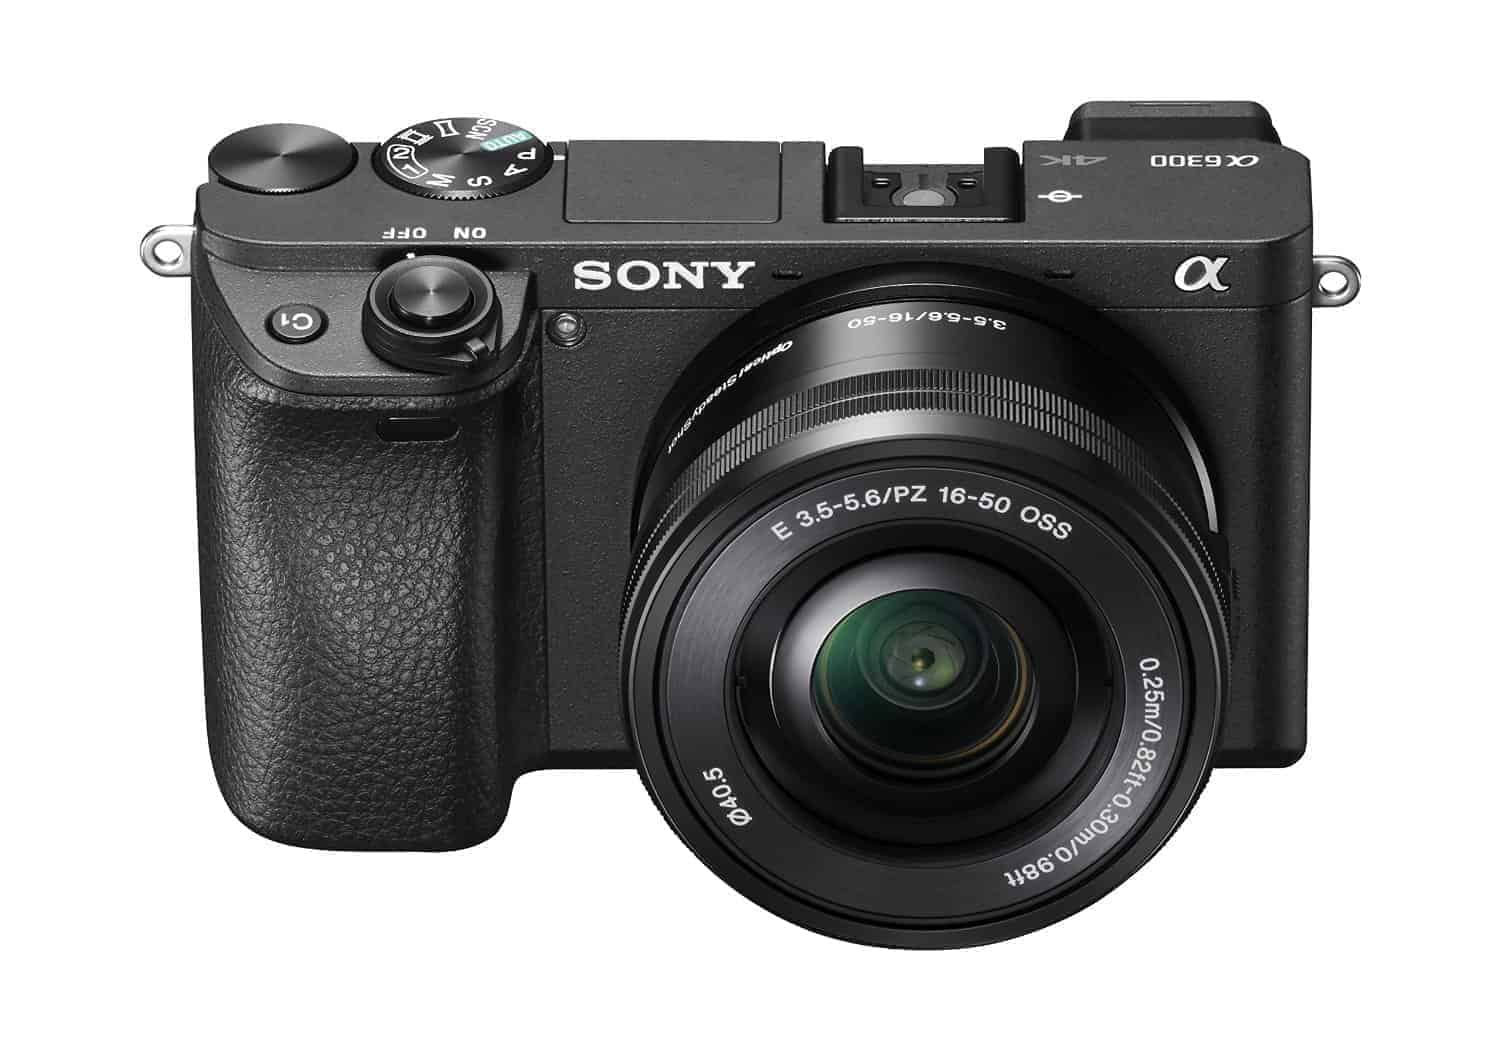 camera buying guide top 10 best dslr mirrorless cameras for rh starkinsider com Auto Buyers Guide Form Buyers Guide for Computers